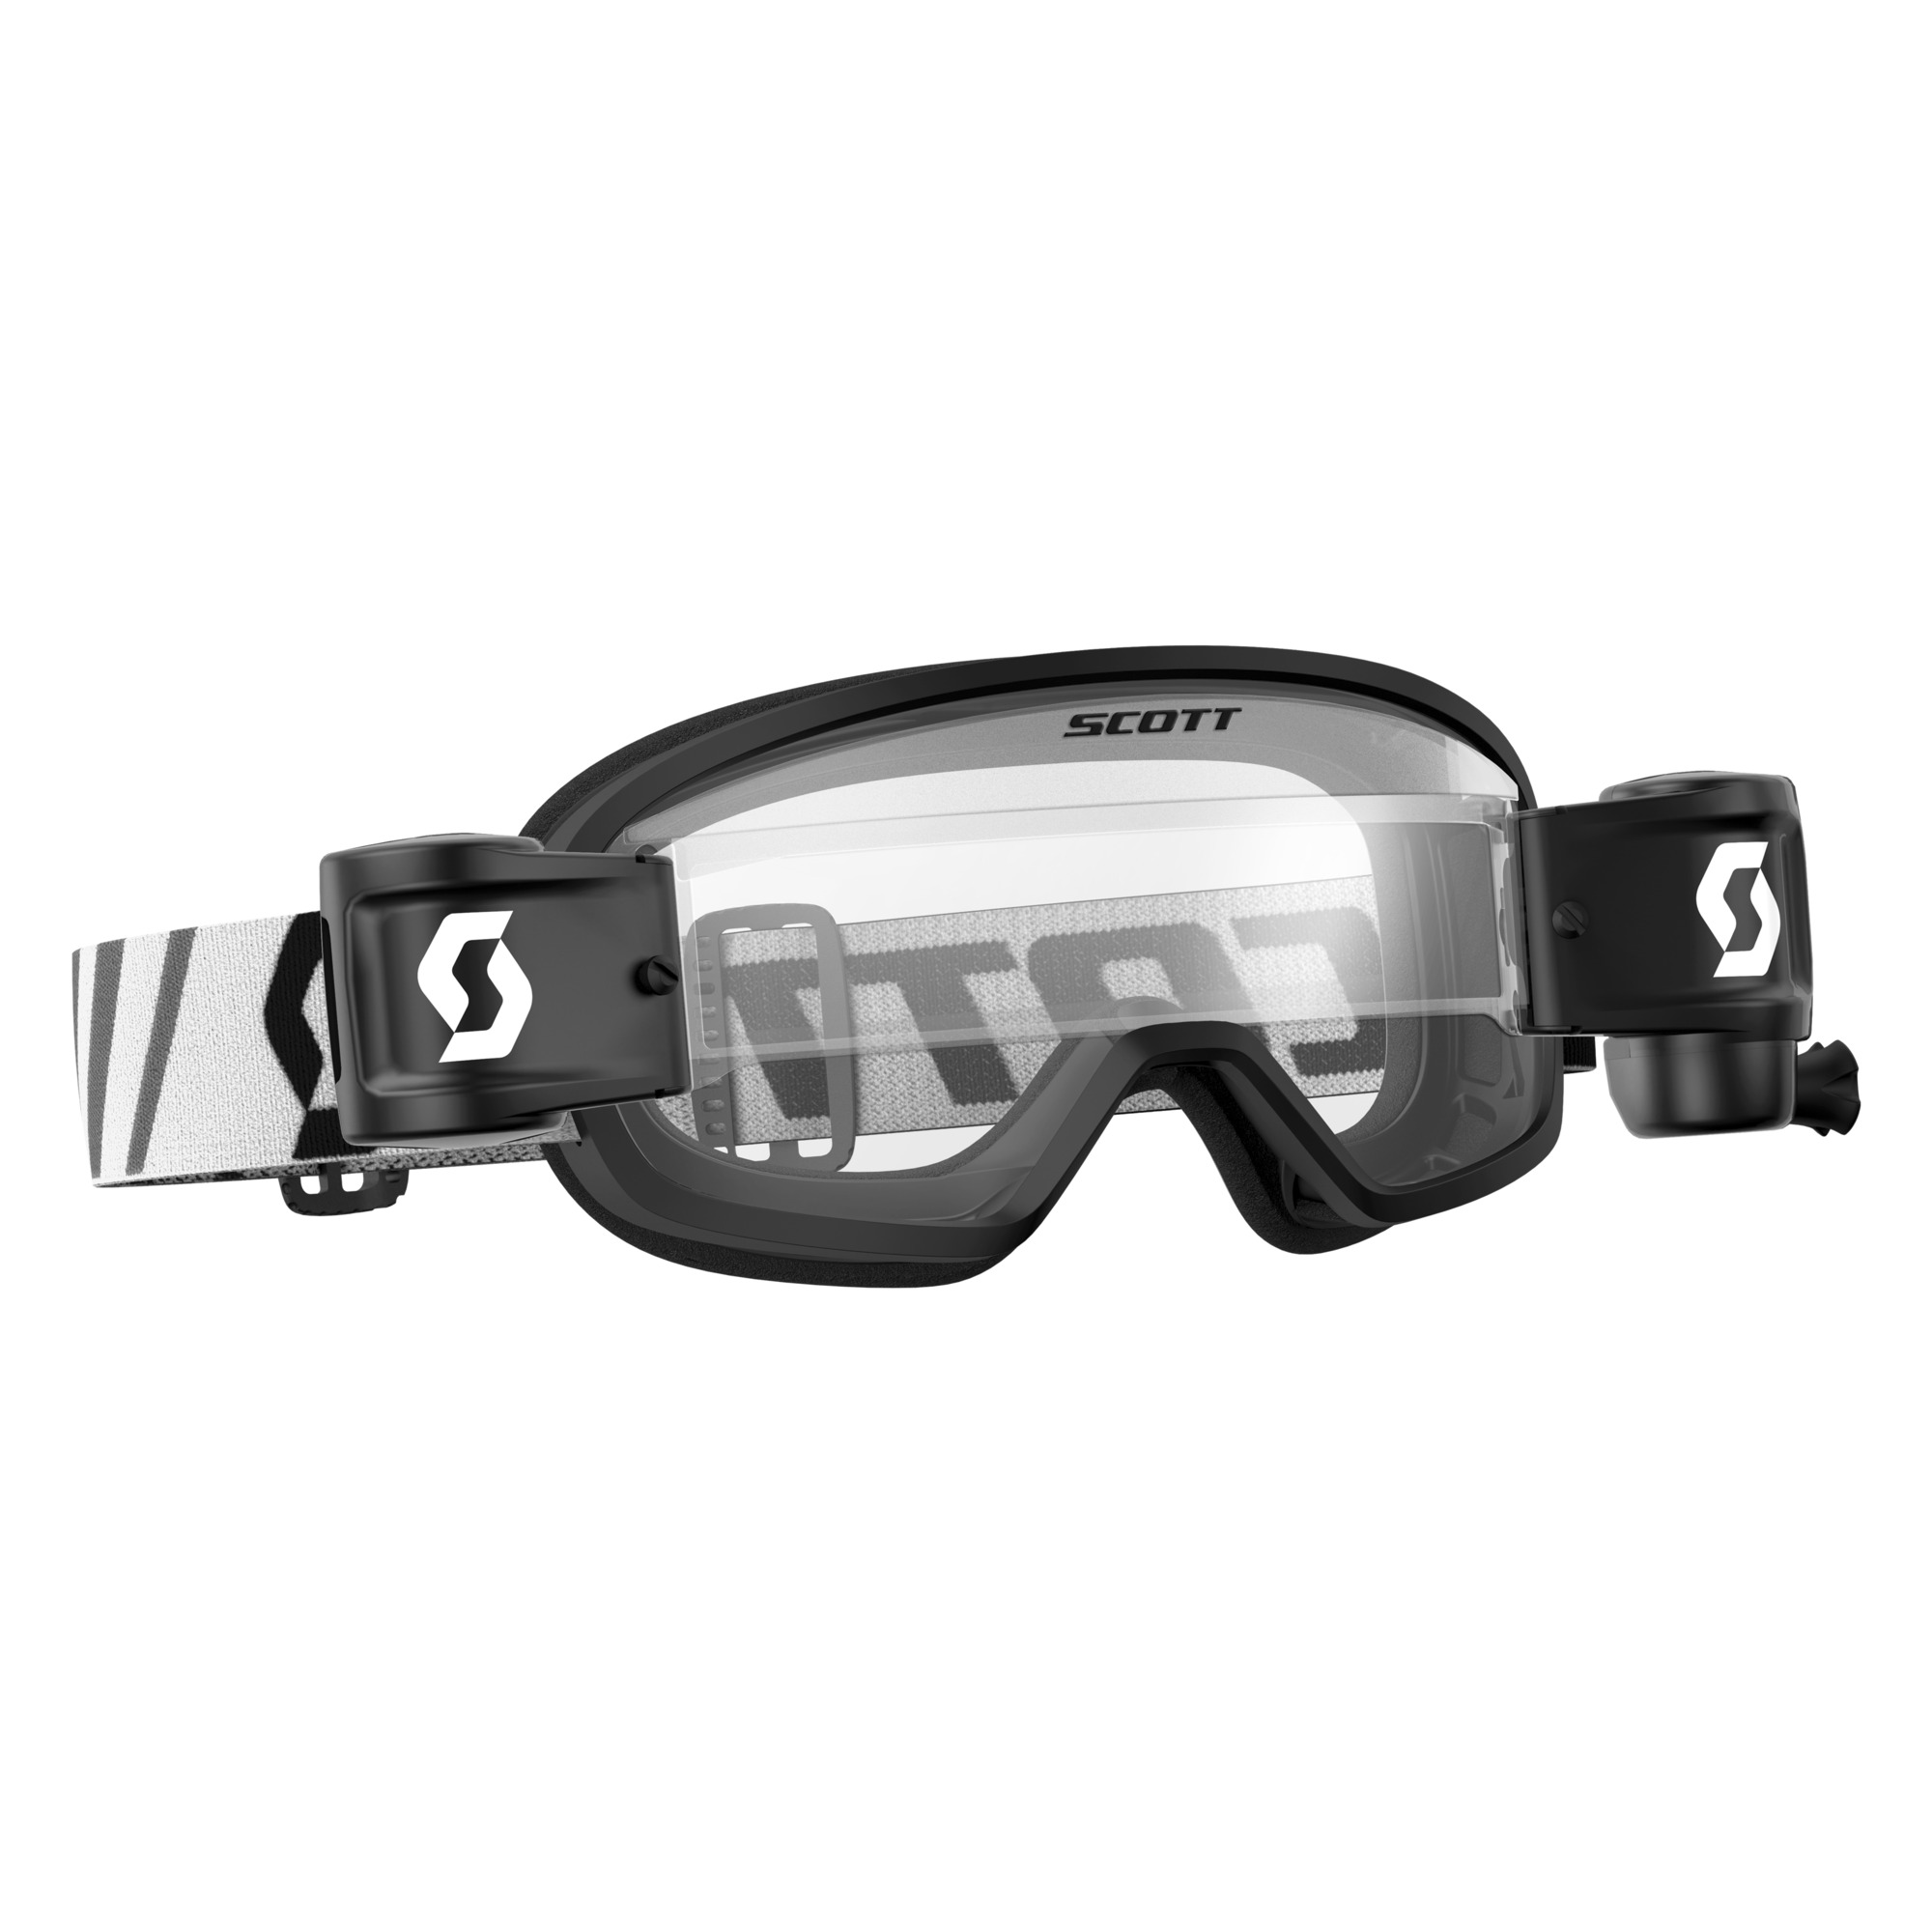 SCOTT Buzz MX WFS Goggle